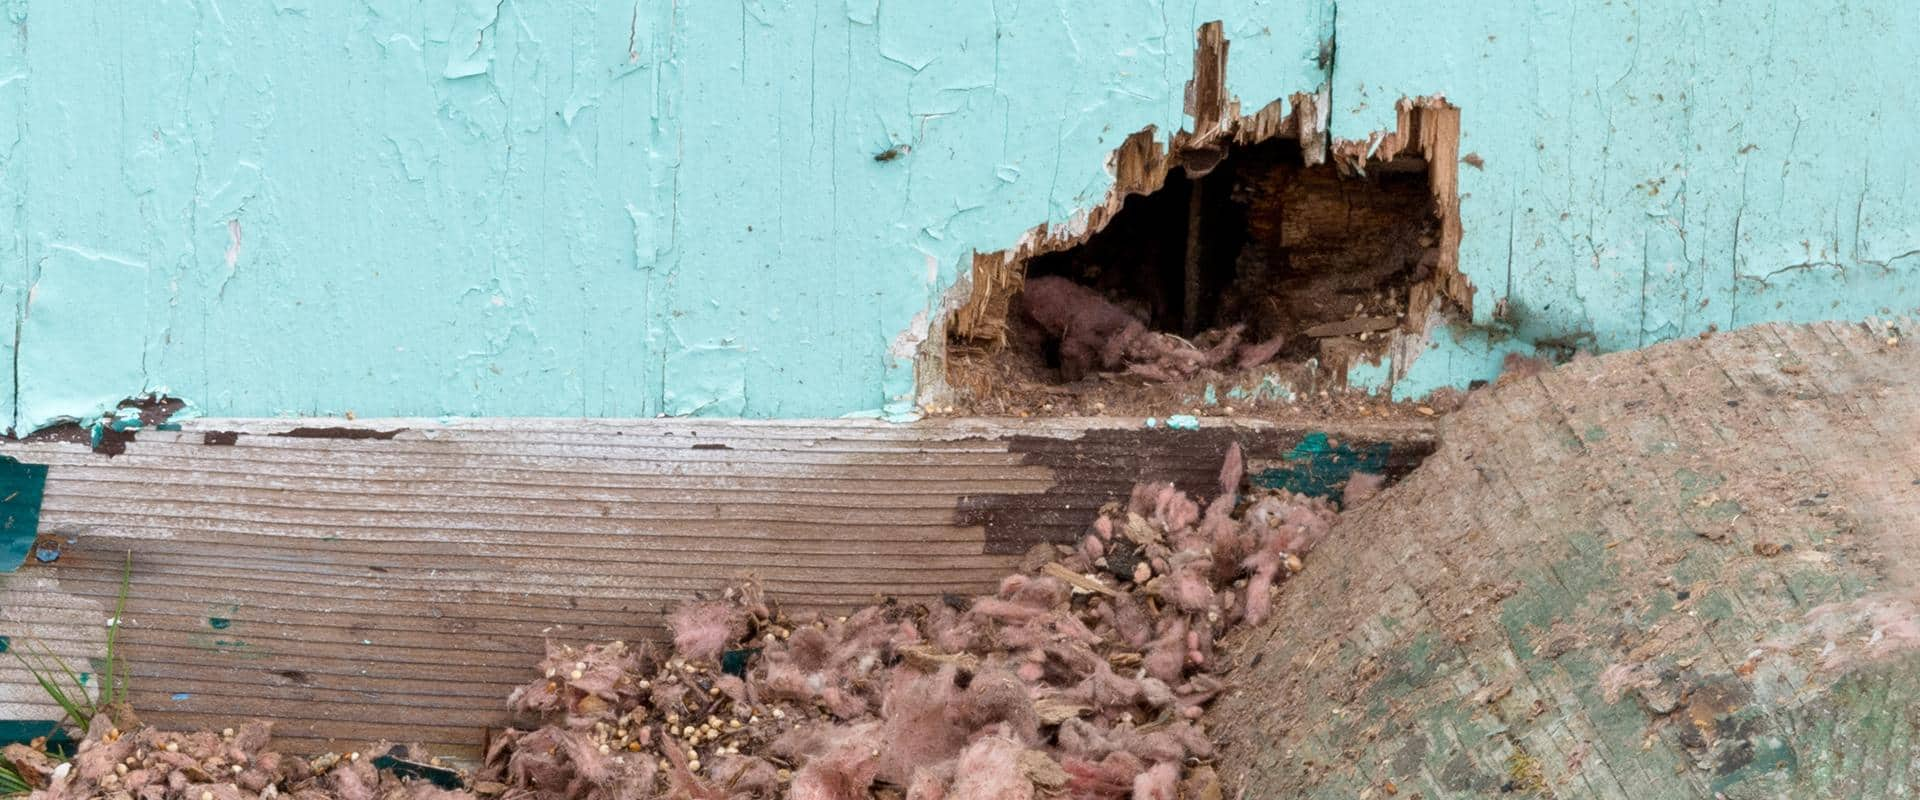 hole in washington home that mice enter